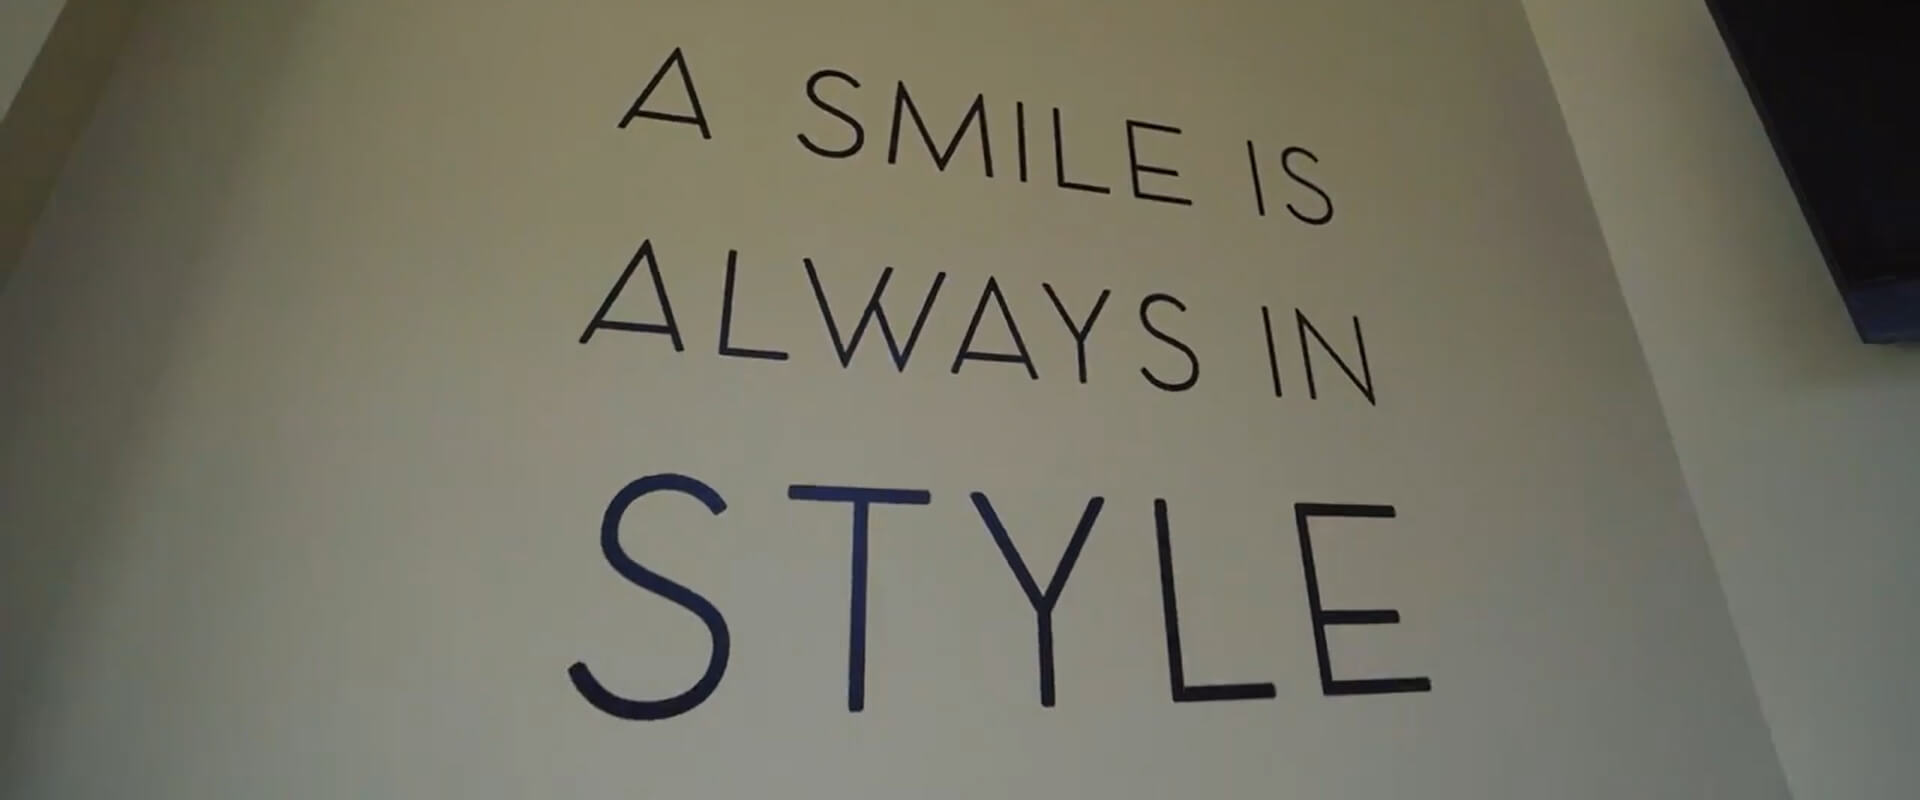 A smile is always in style